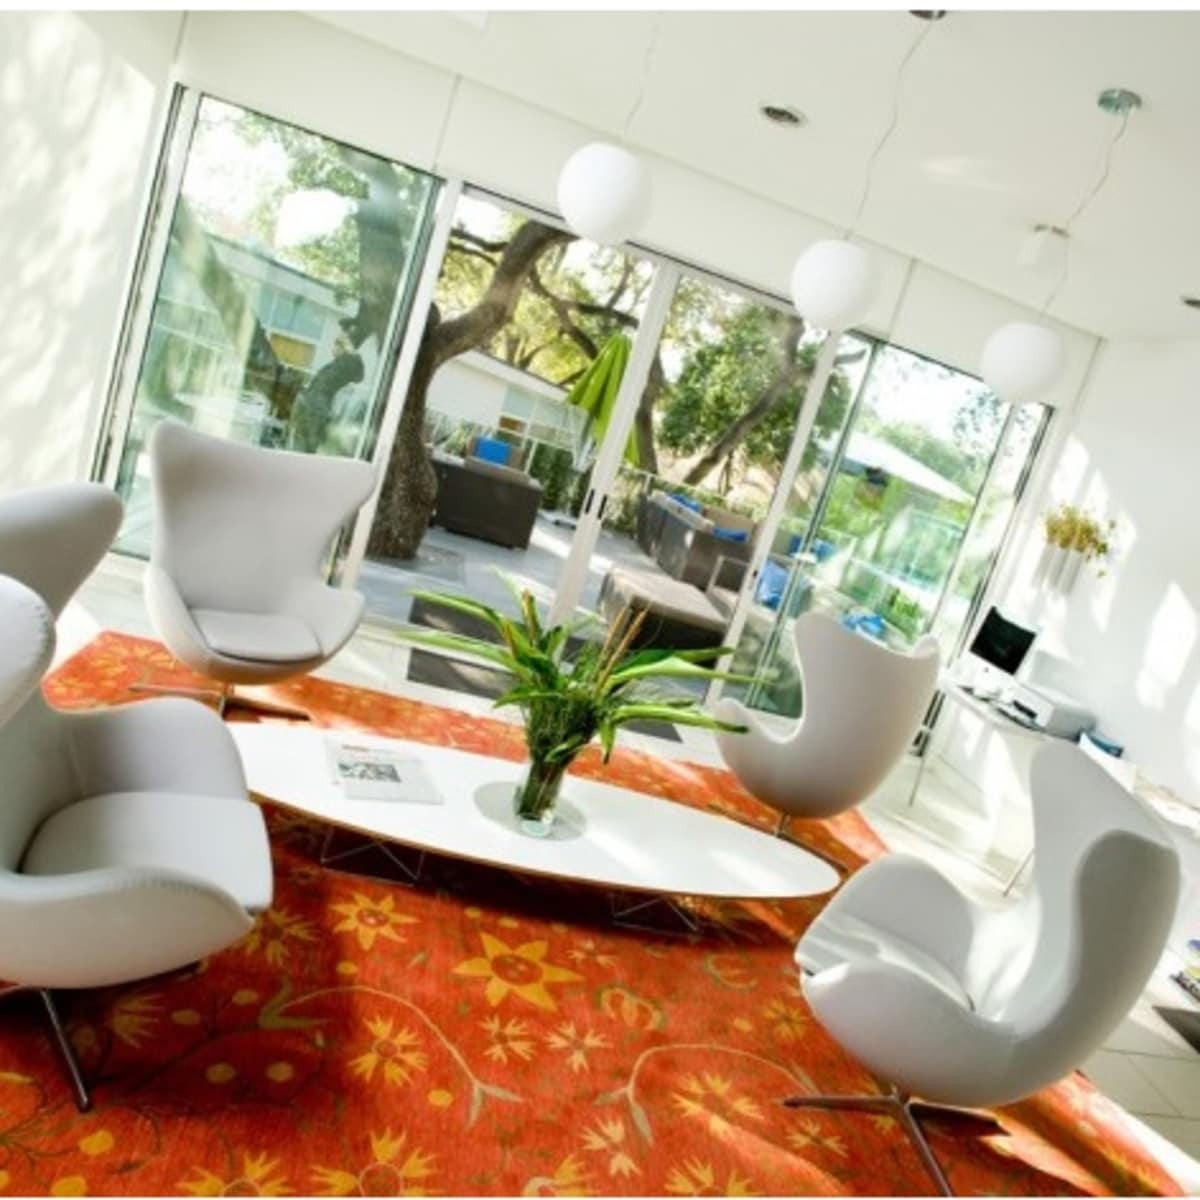 Austin_photo: Places_Hotel_Kimber Modern_room